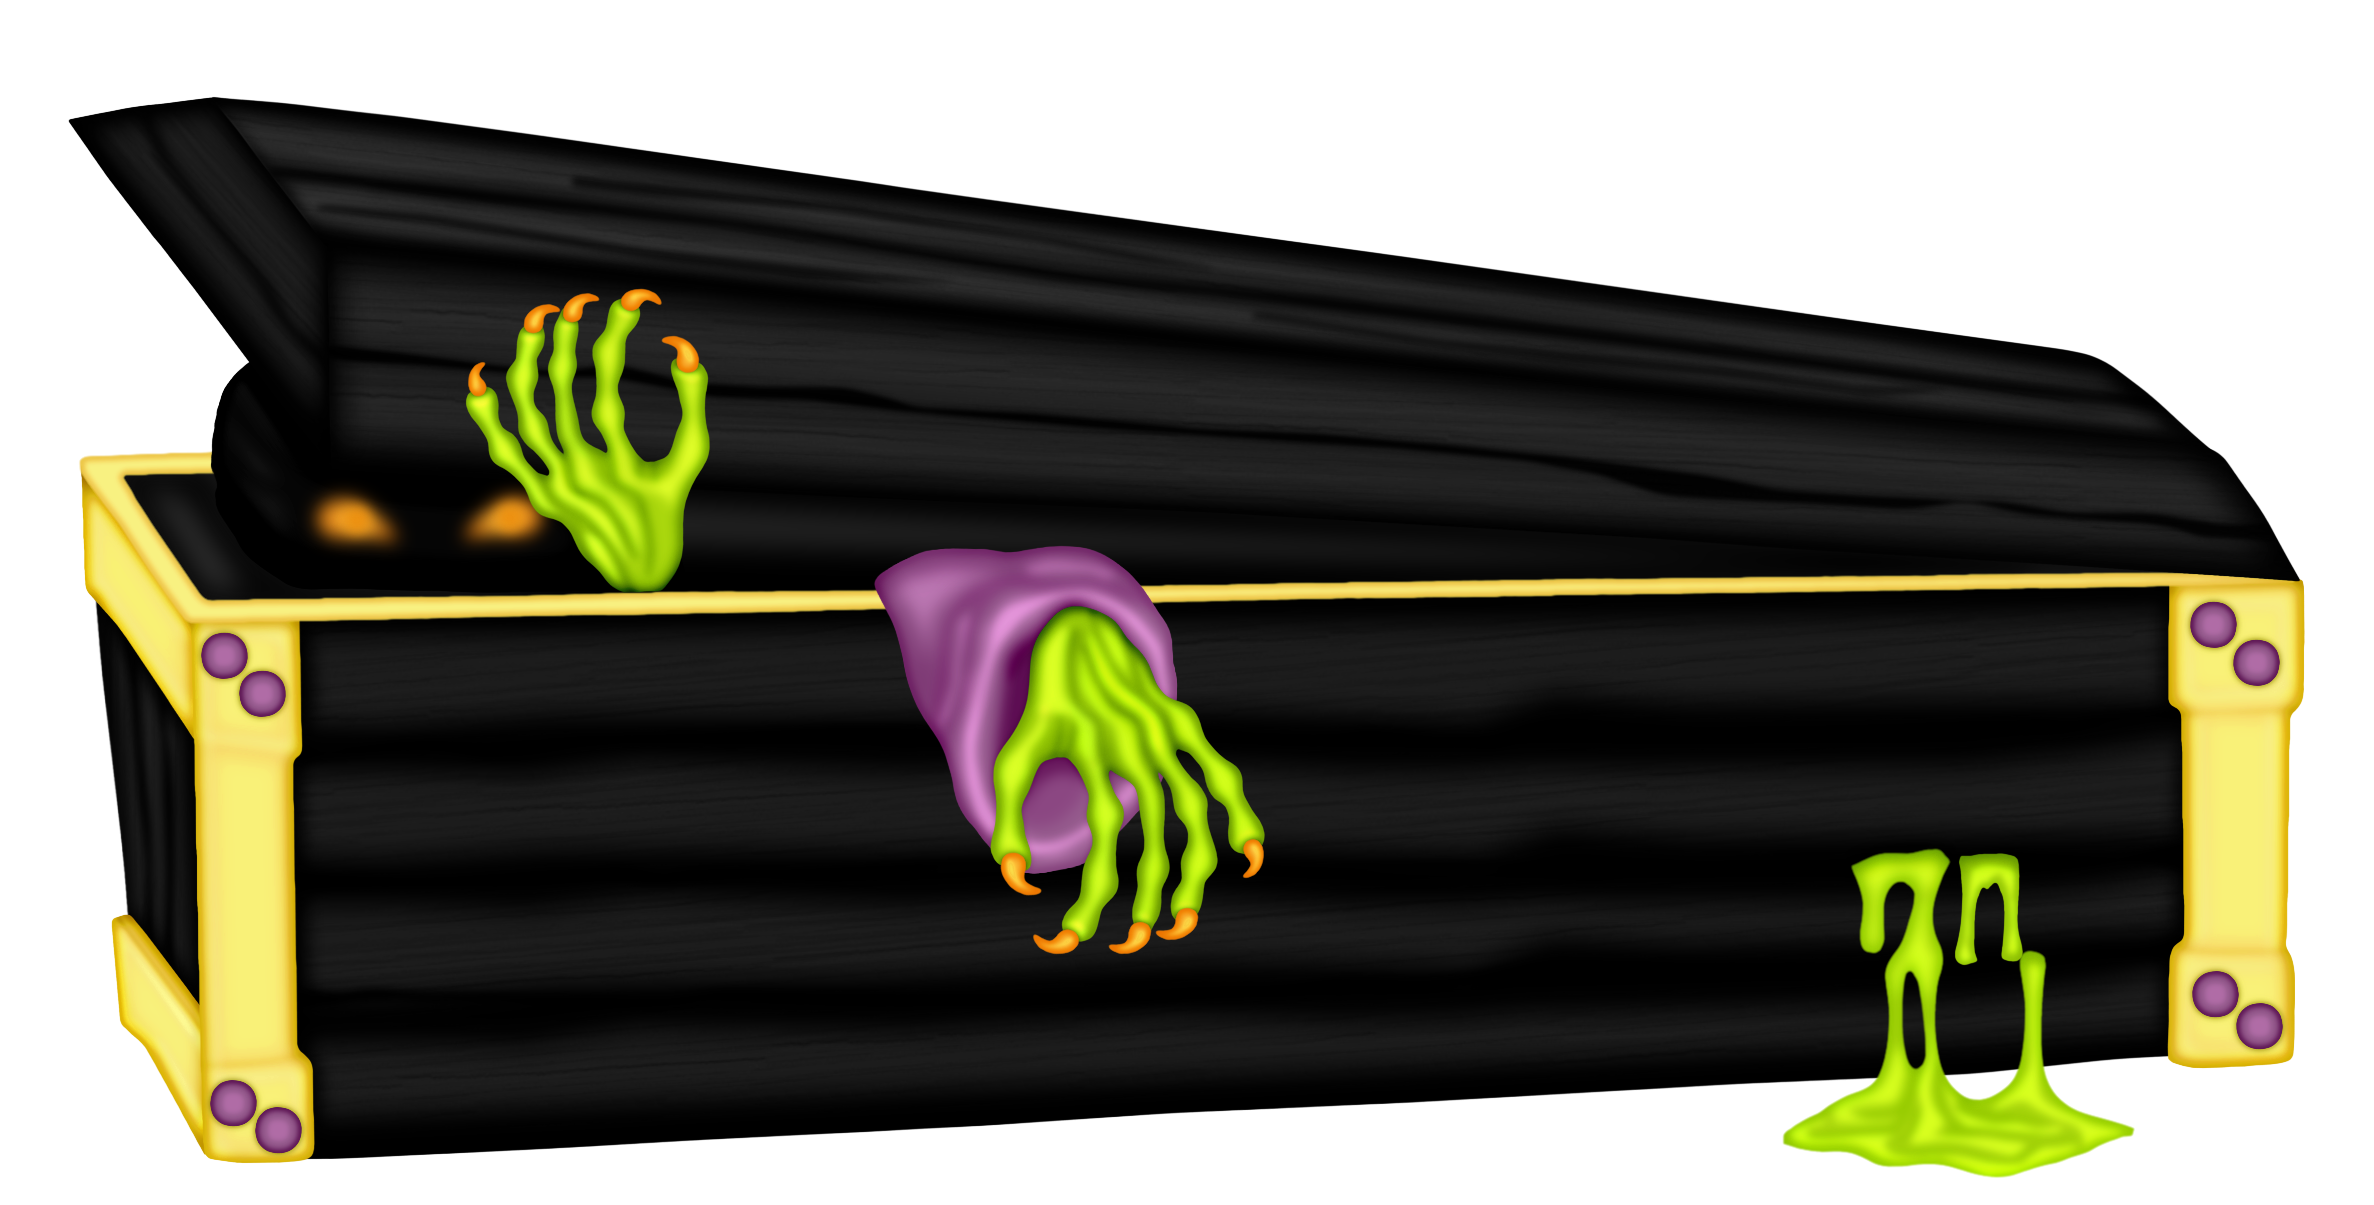 Transparent coffin halloween. Zombie png clipart gallery